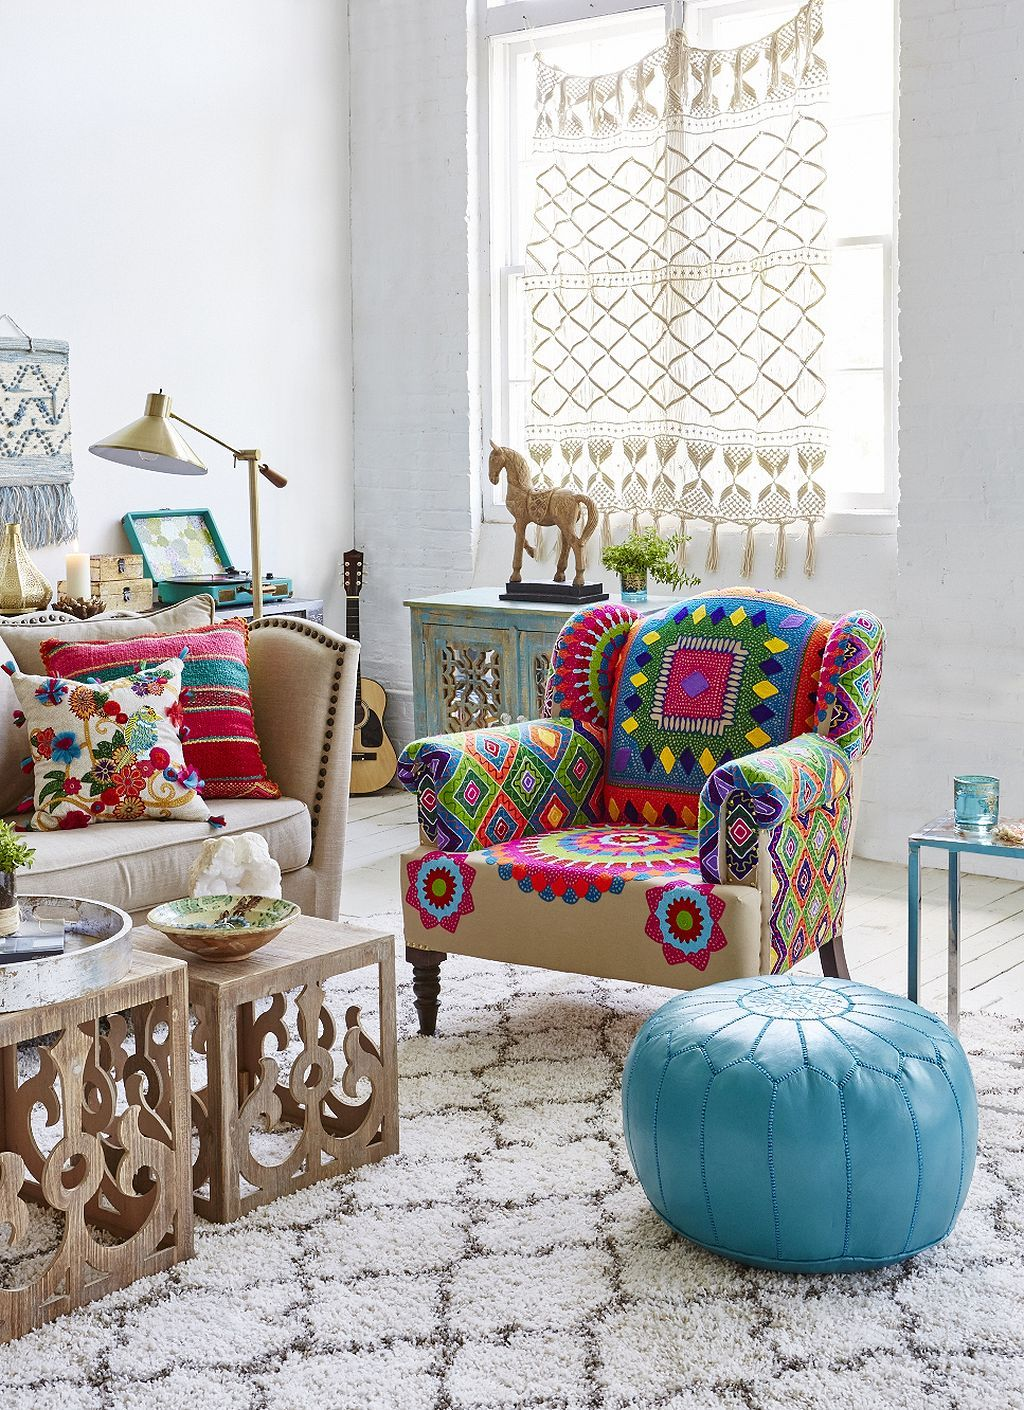 Gorgeous 100 Boho Chic Living Room Ideas Https://pinarchitecture.com/100